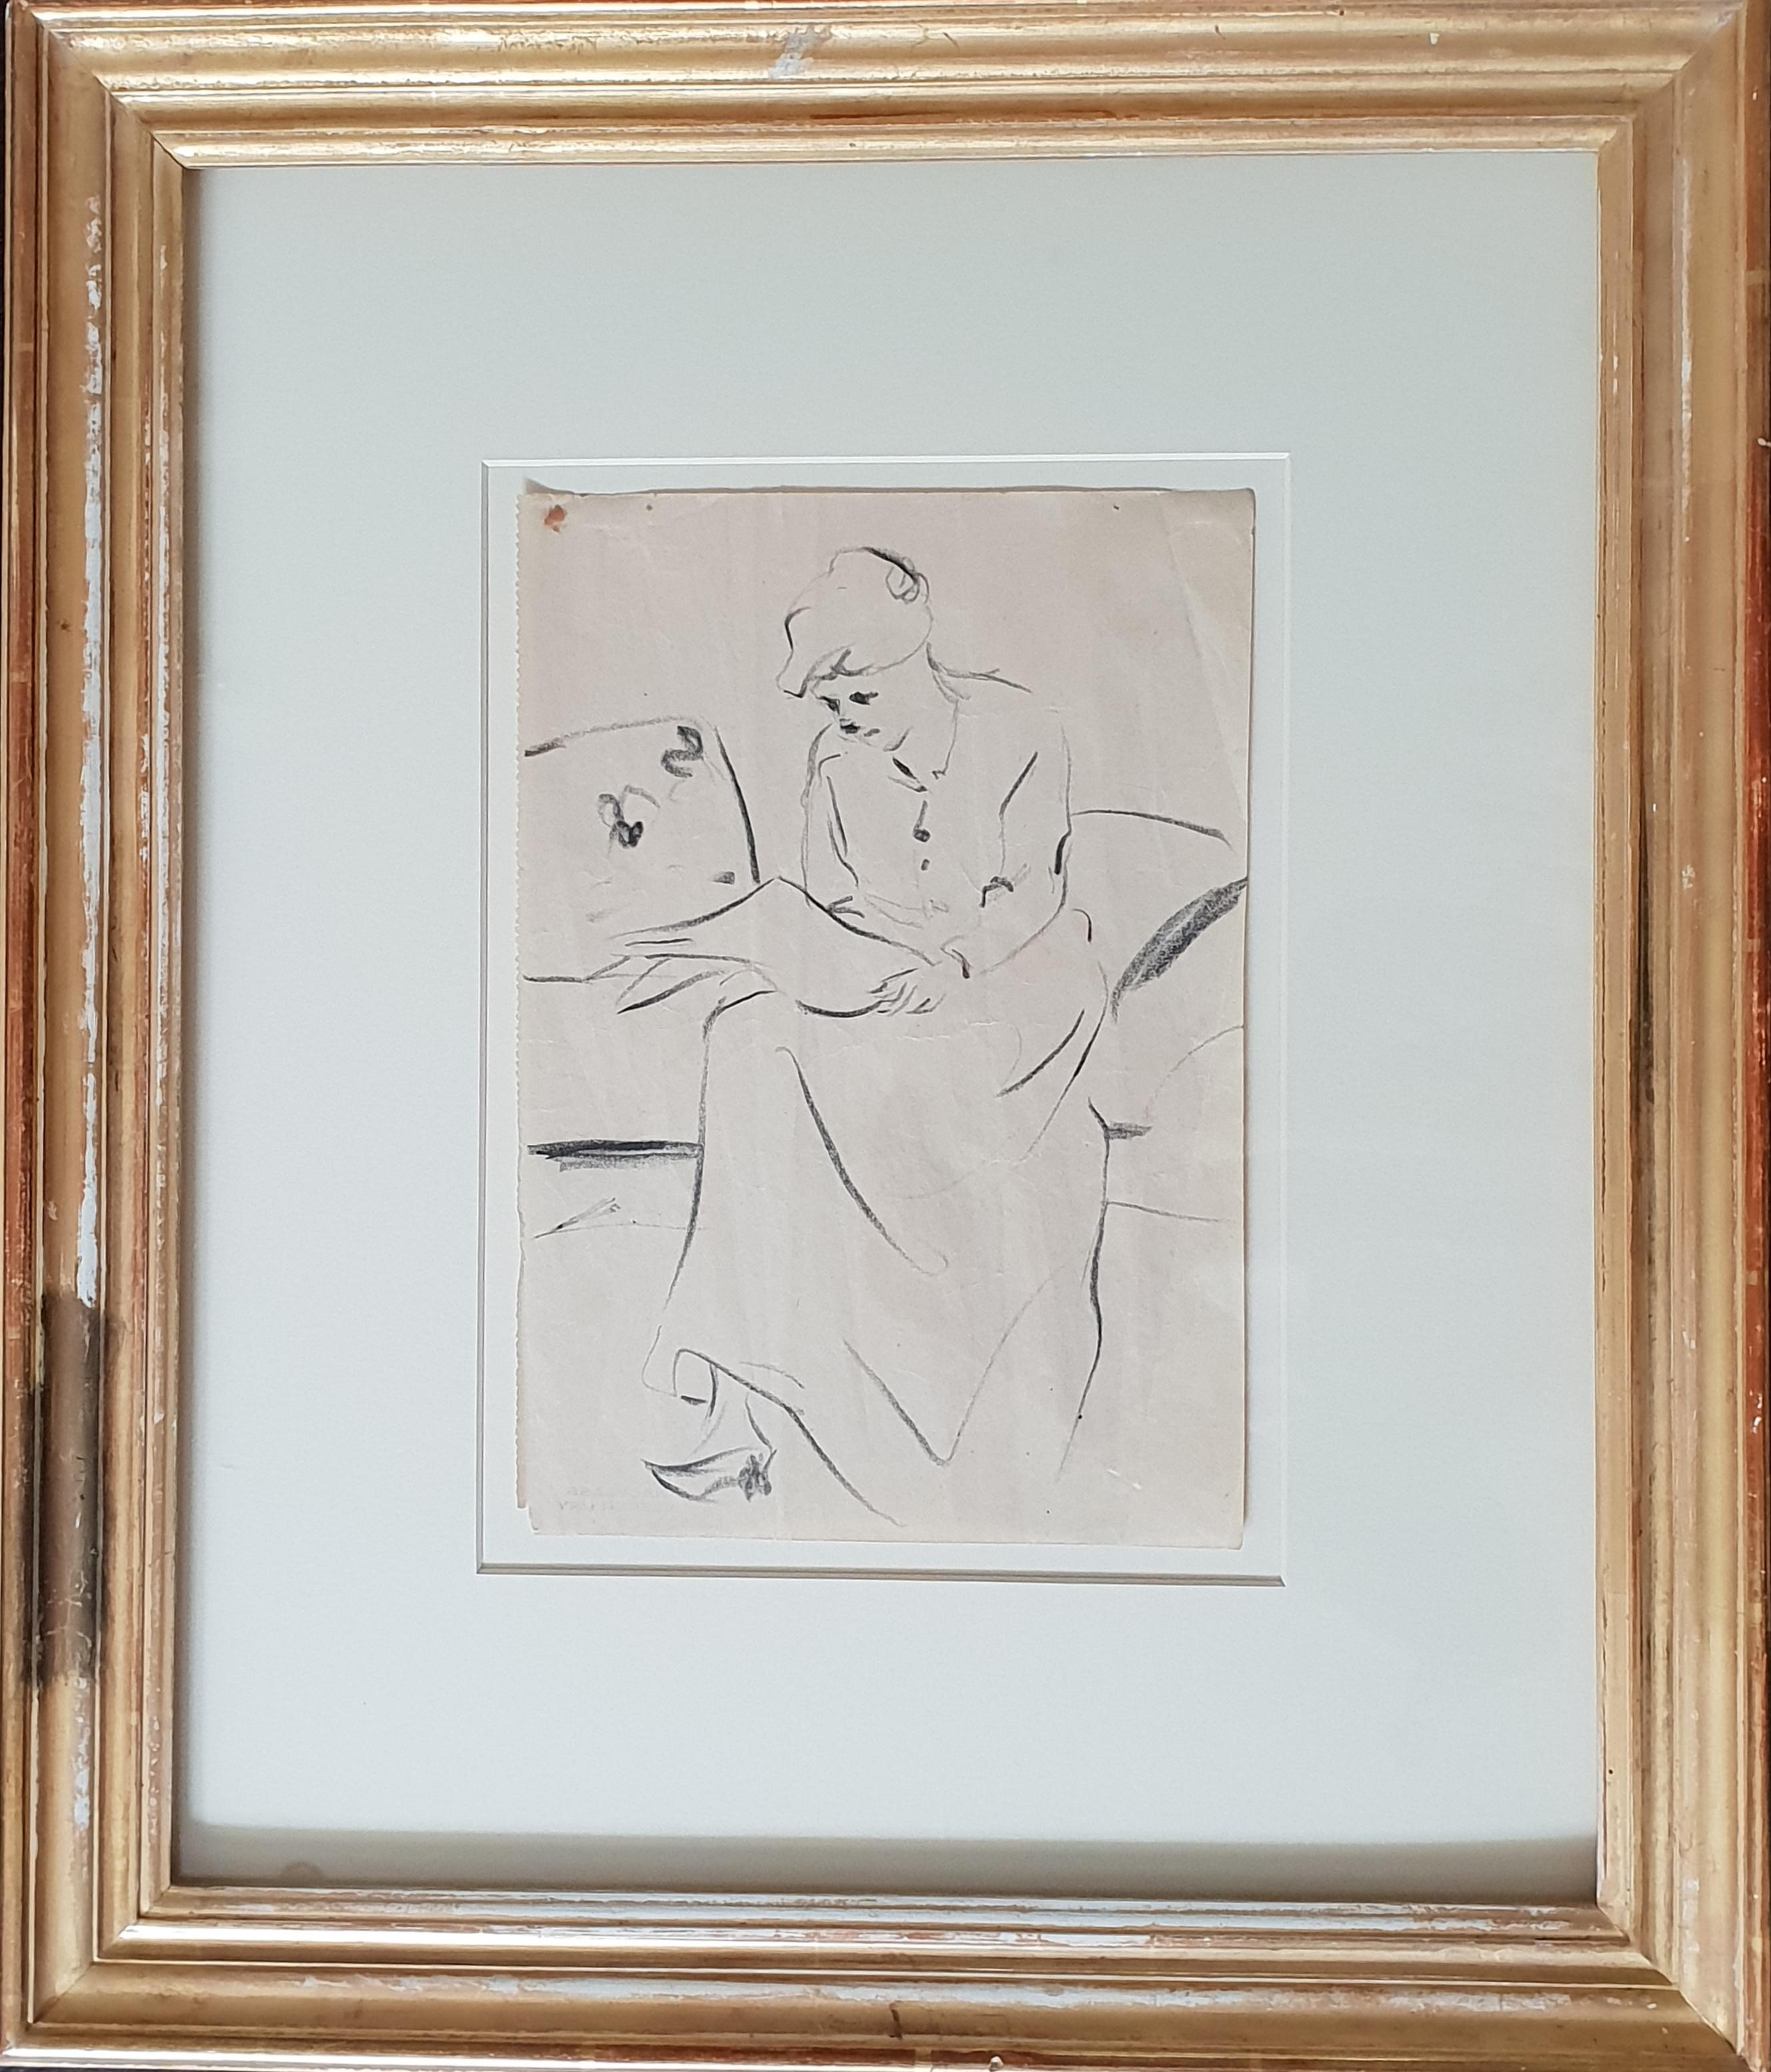 Pencil Drawing by Lesser Ury, about 1900